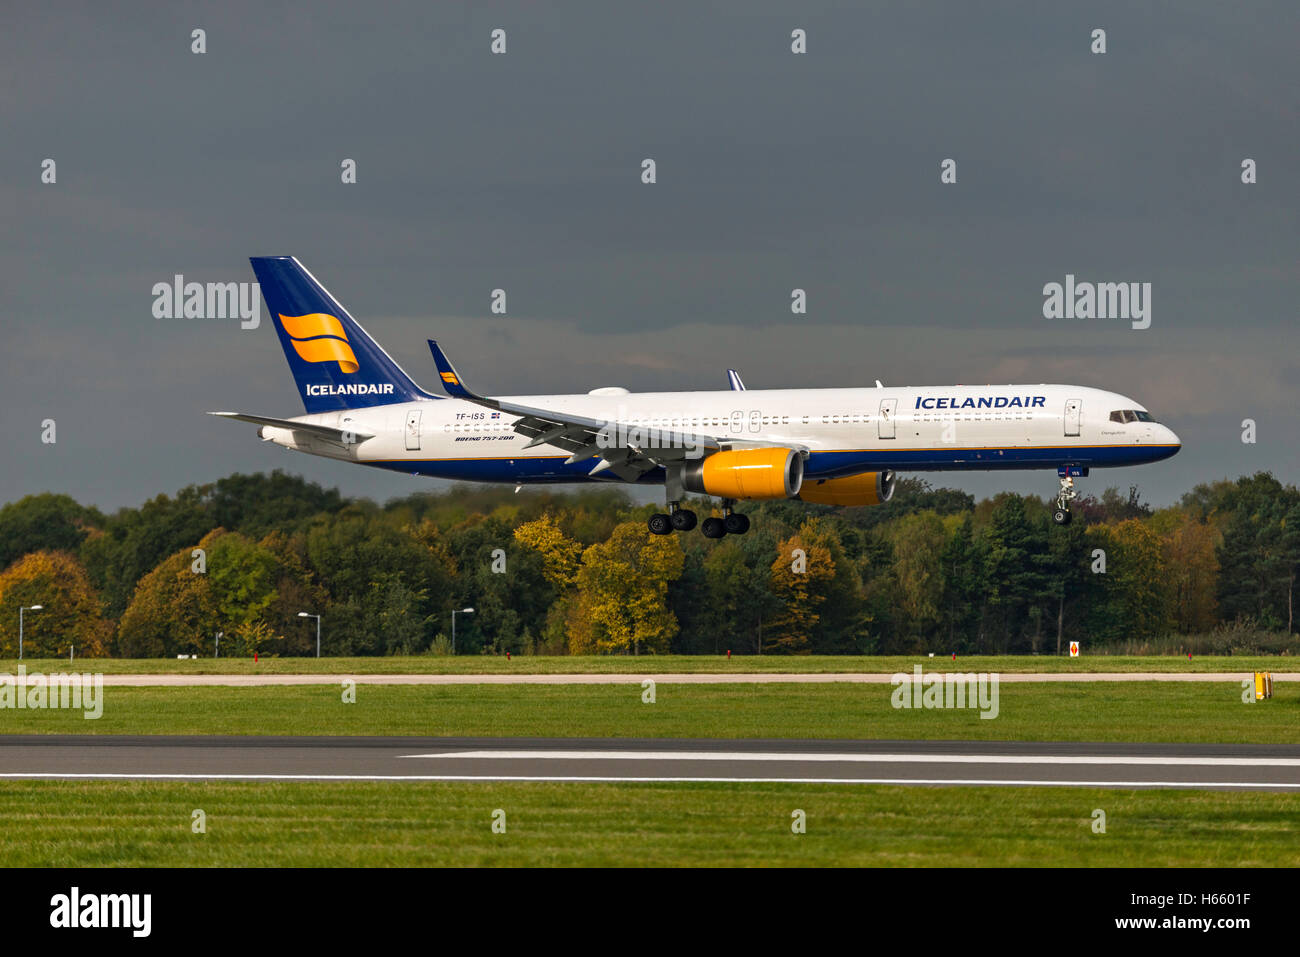 TF-ISS Icelandair Boeing 757-223 Manchester Airport England Uk. arrivals. - Stock Image